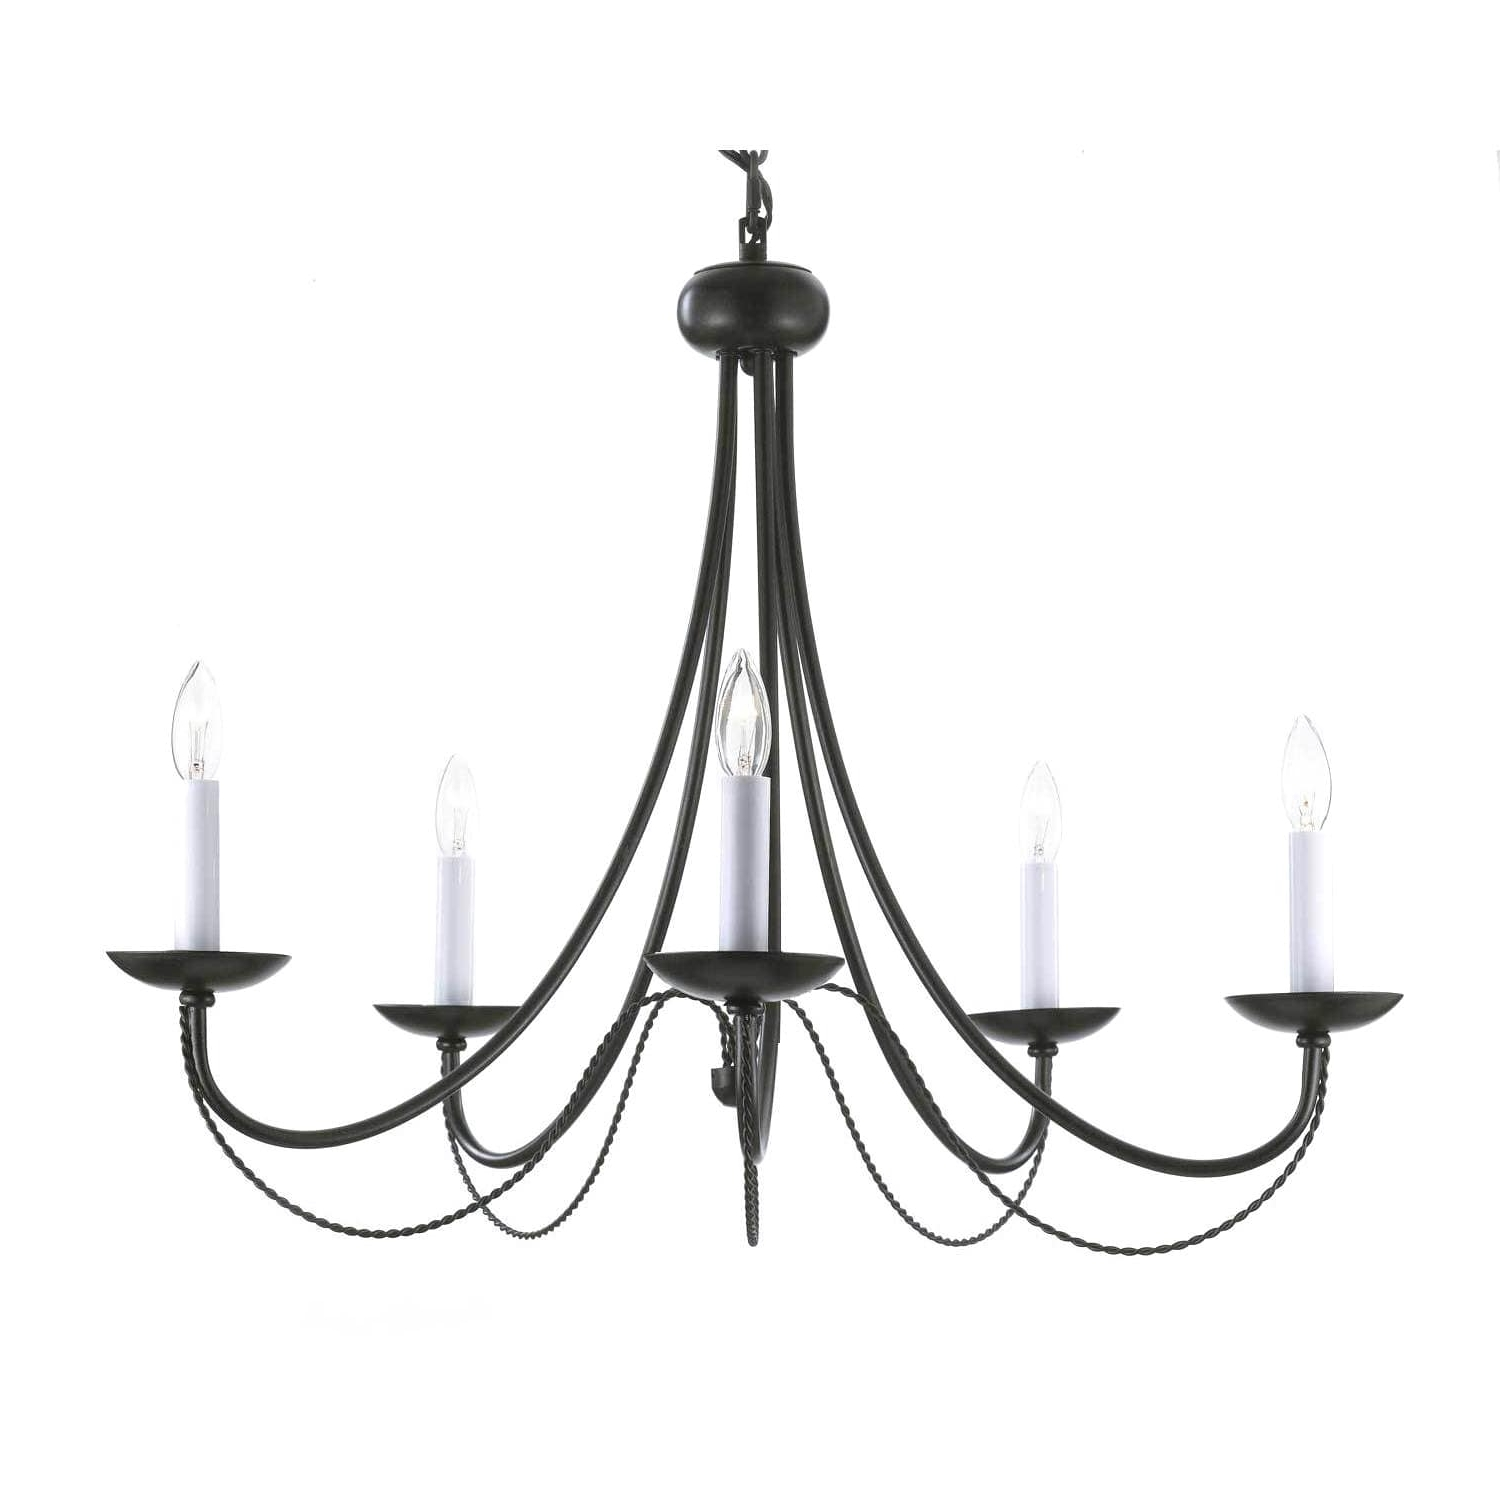 Trendy Gallery Versailles 5 Light Black Wrought Iron Chandelier – Free Intended For Wrought Iron Chandeliers (View 7 of 15)